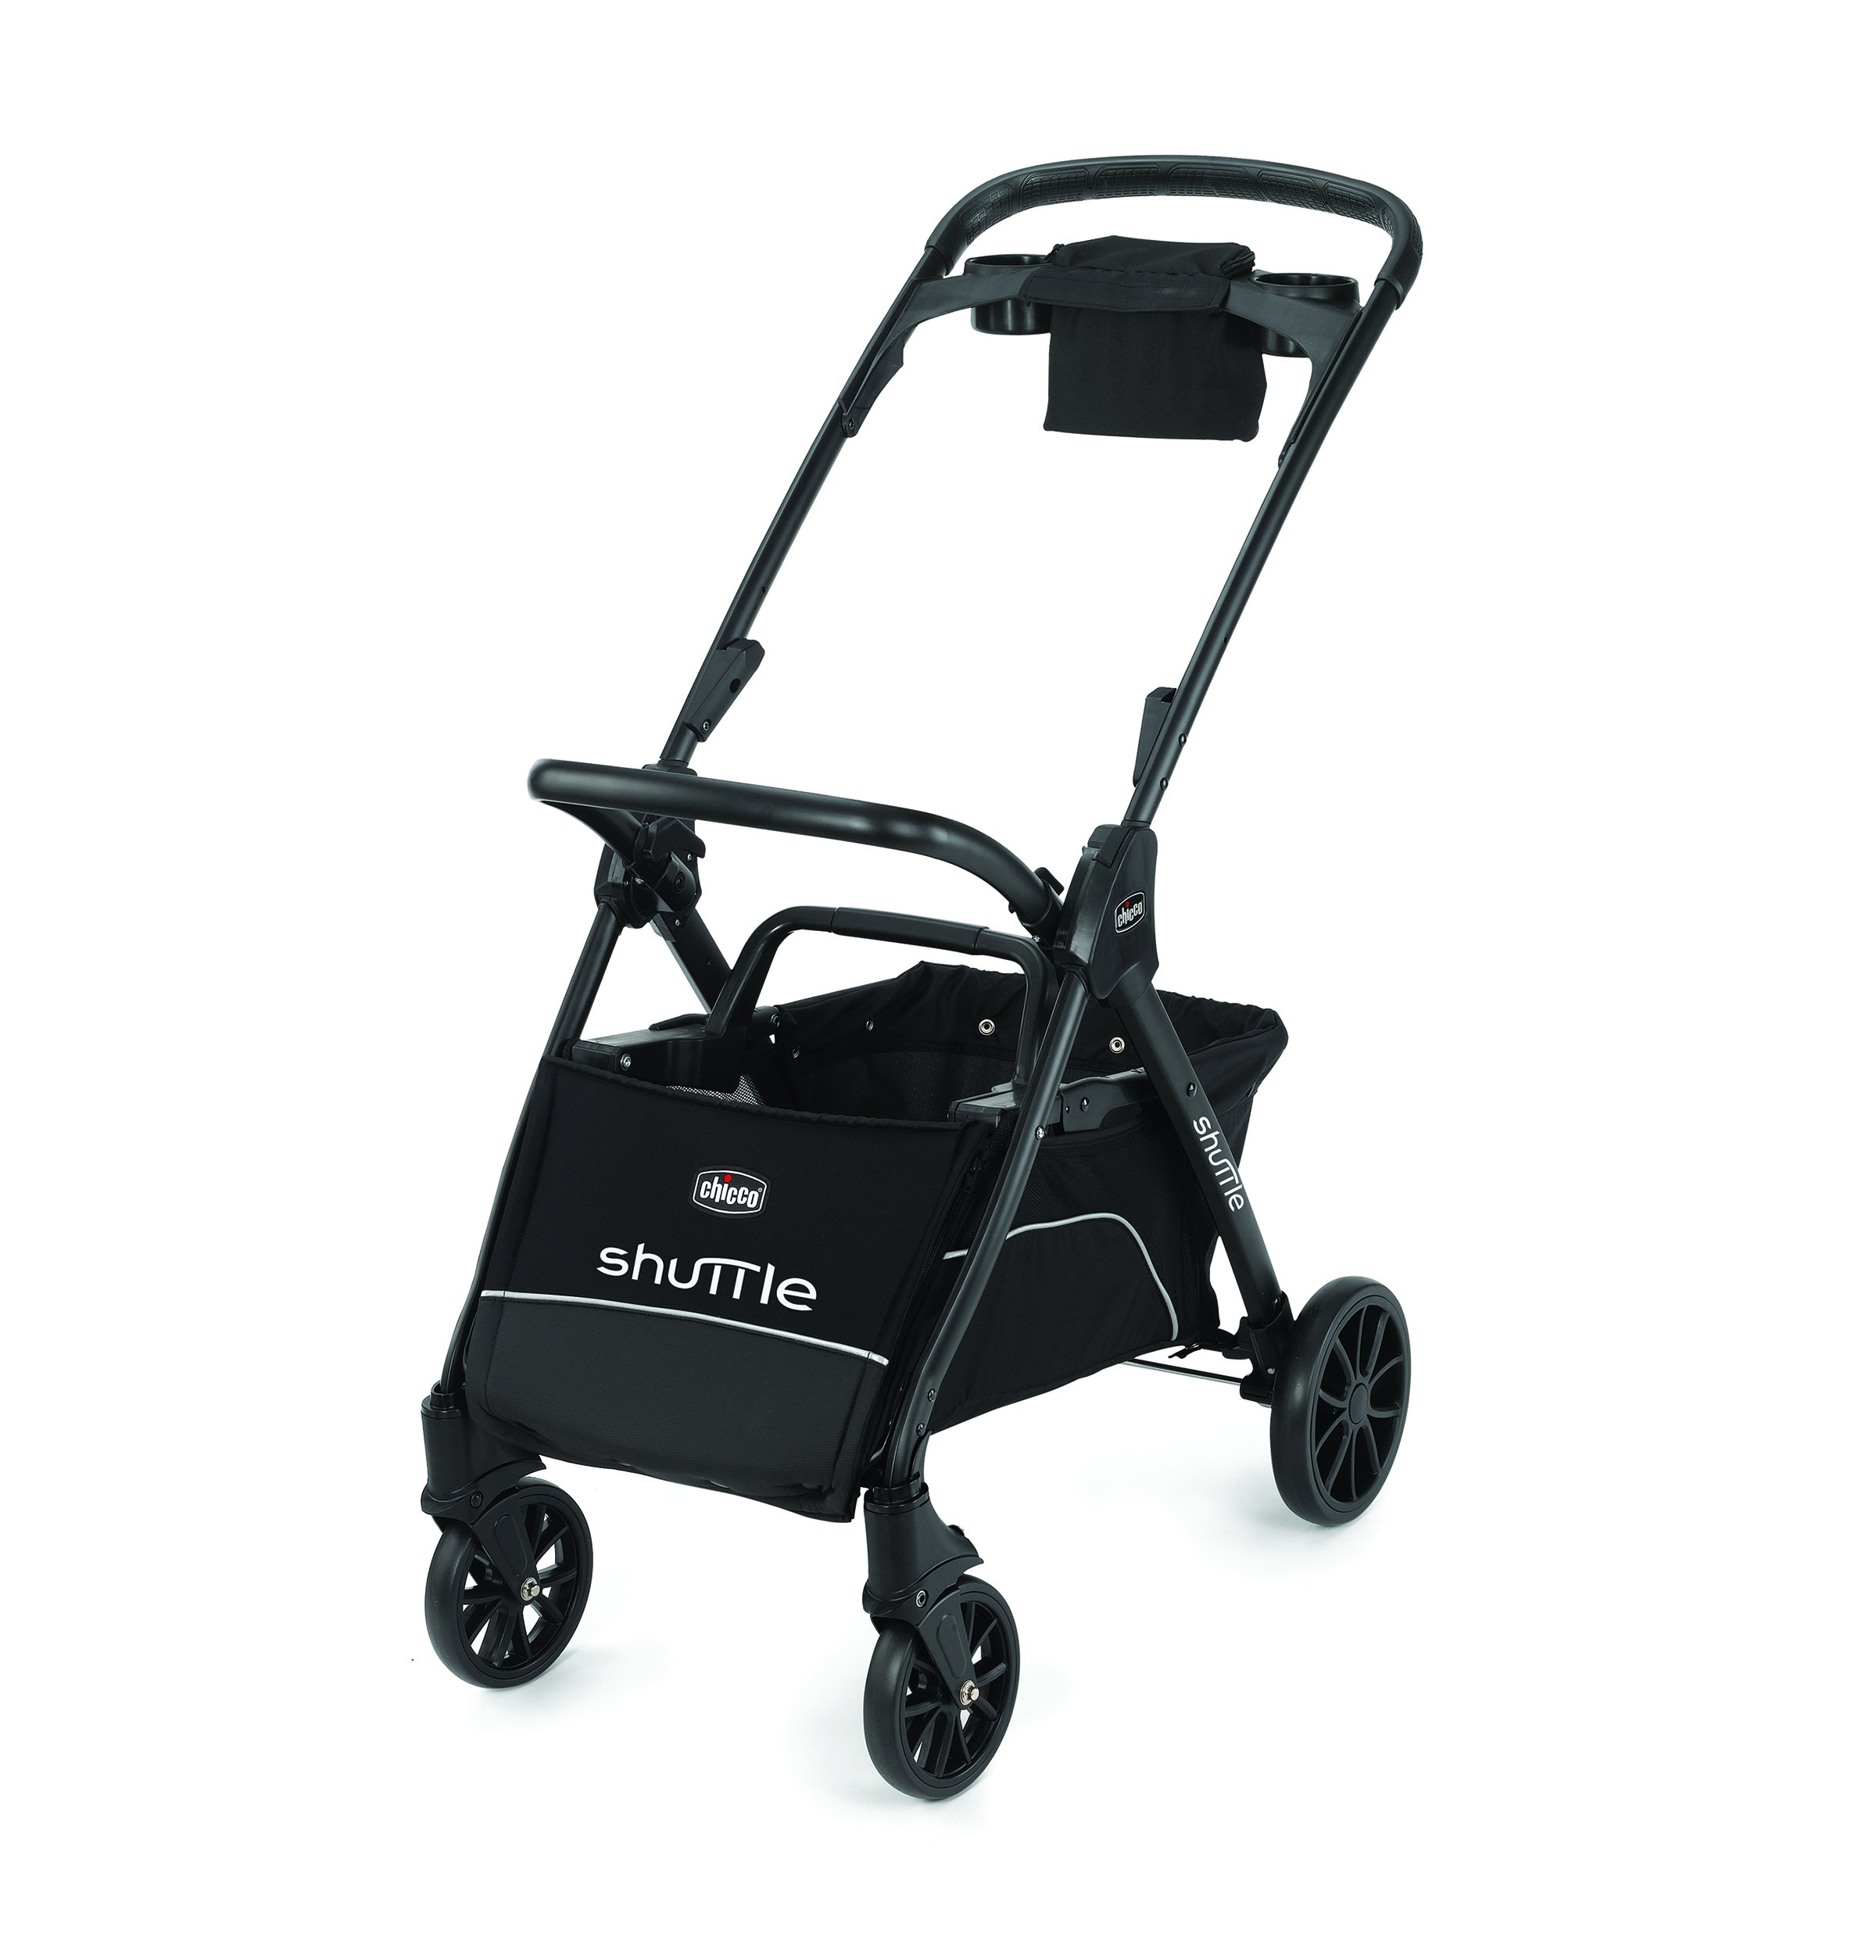 Chicco Shuttle Frame Stroller Black